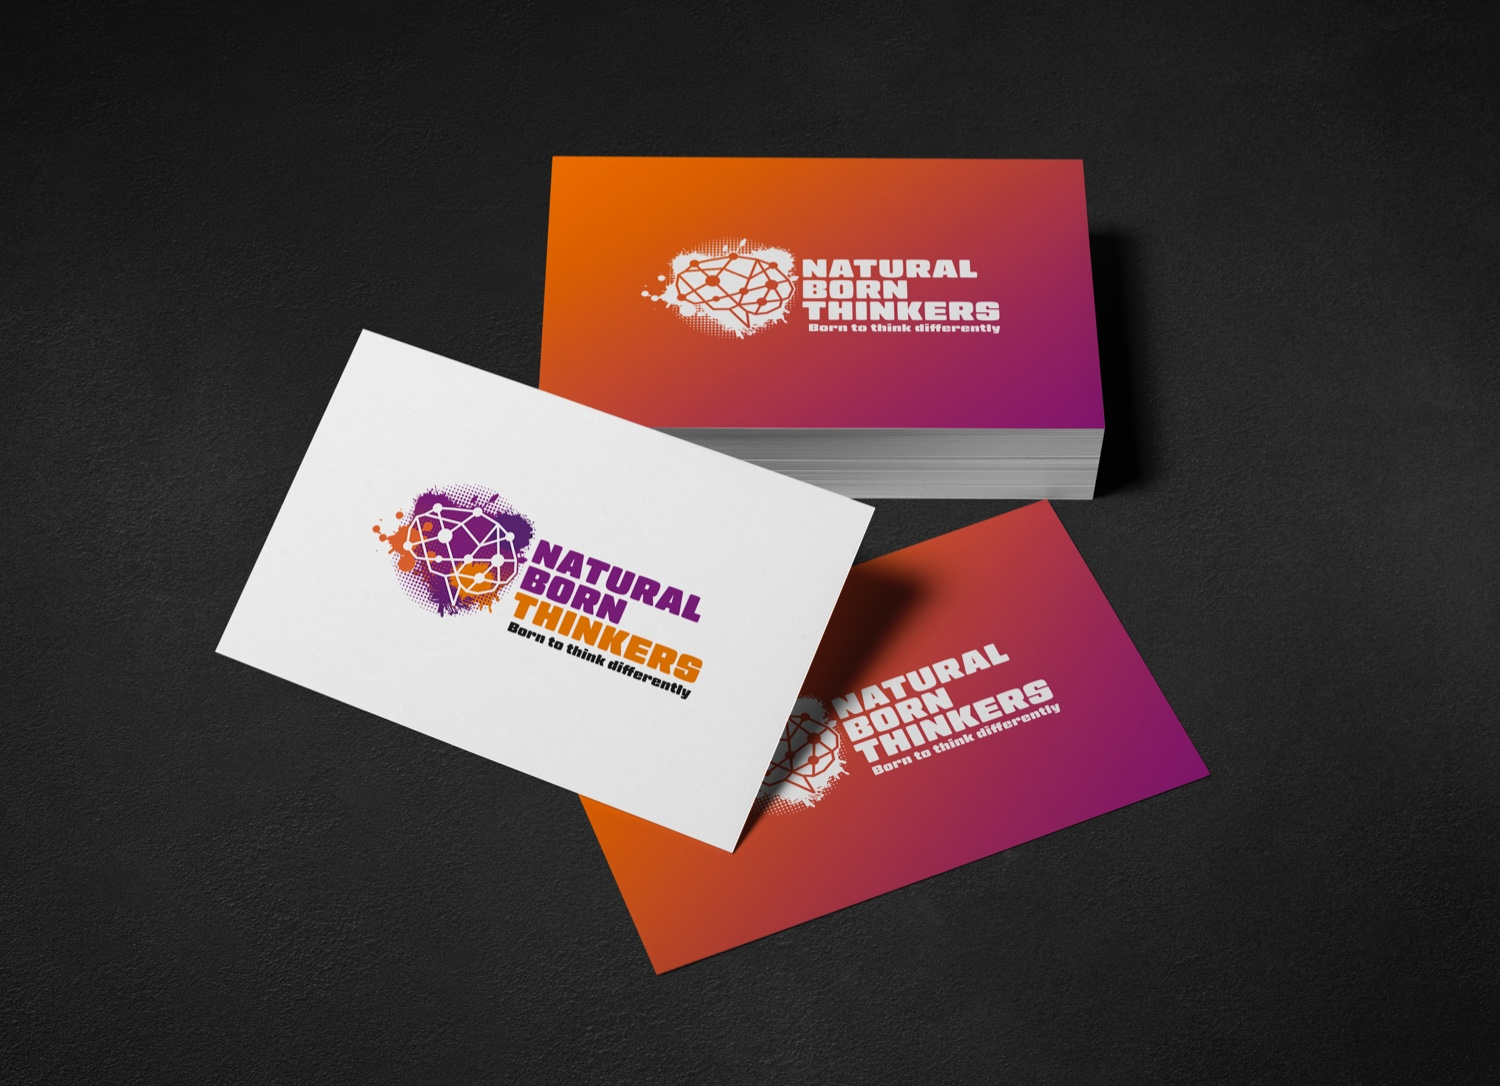 Natural born thinkers logo design on a business cards.